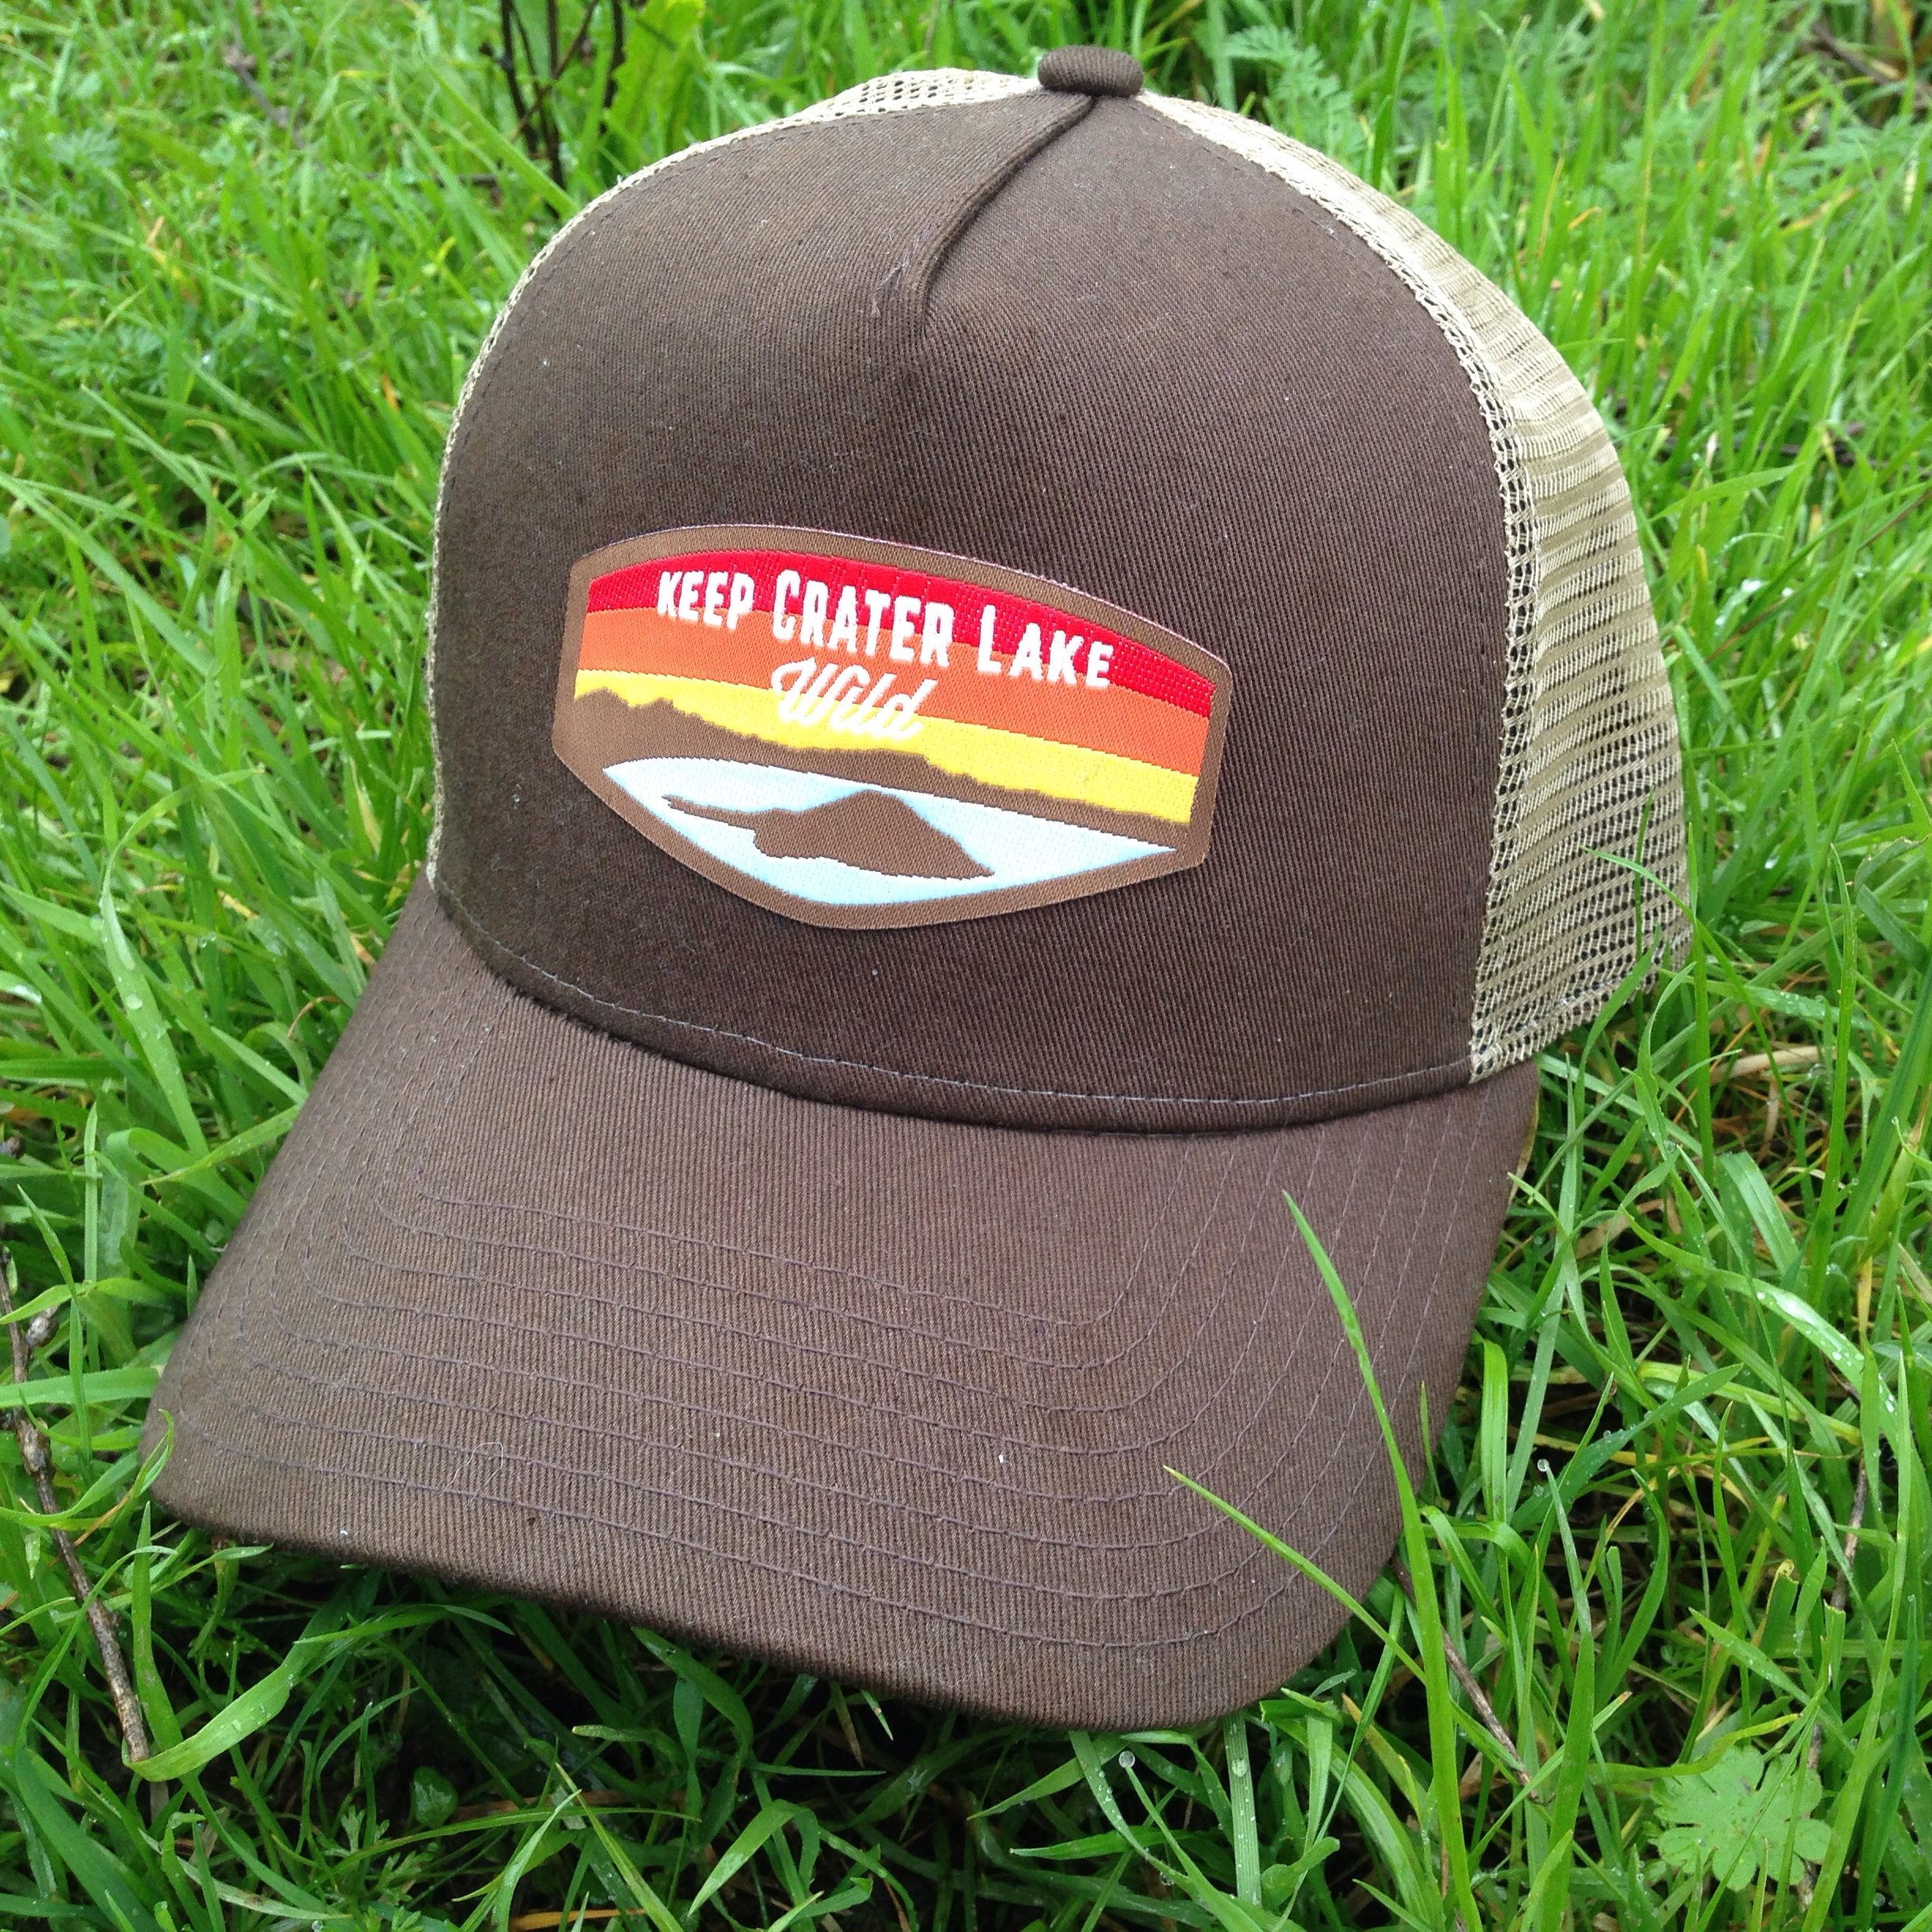 Oregon Wild hat